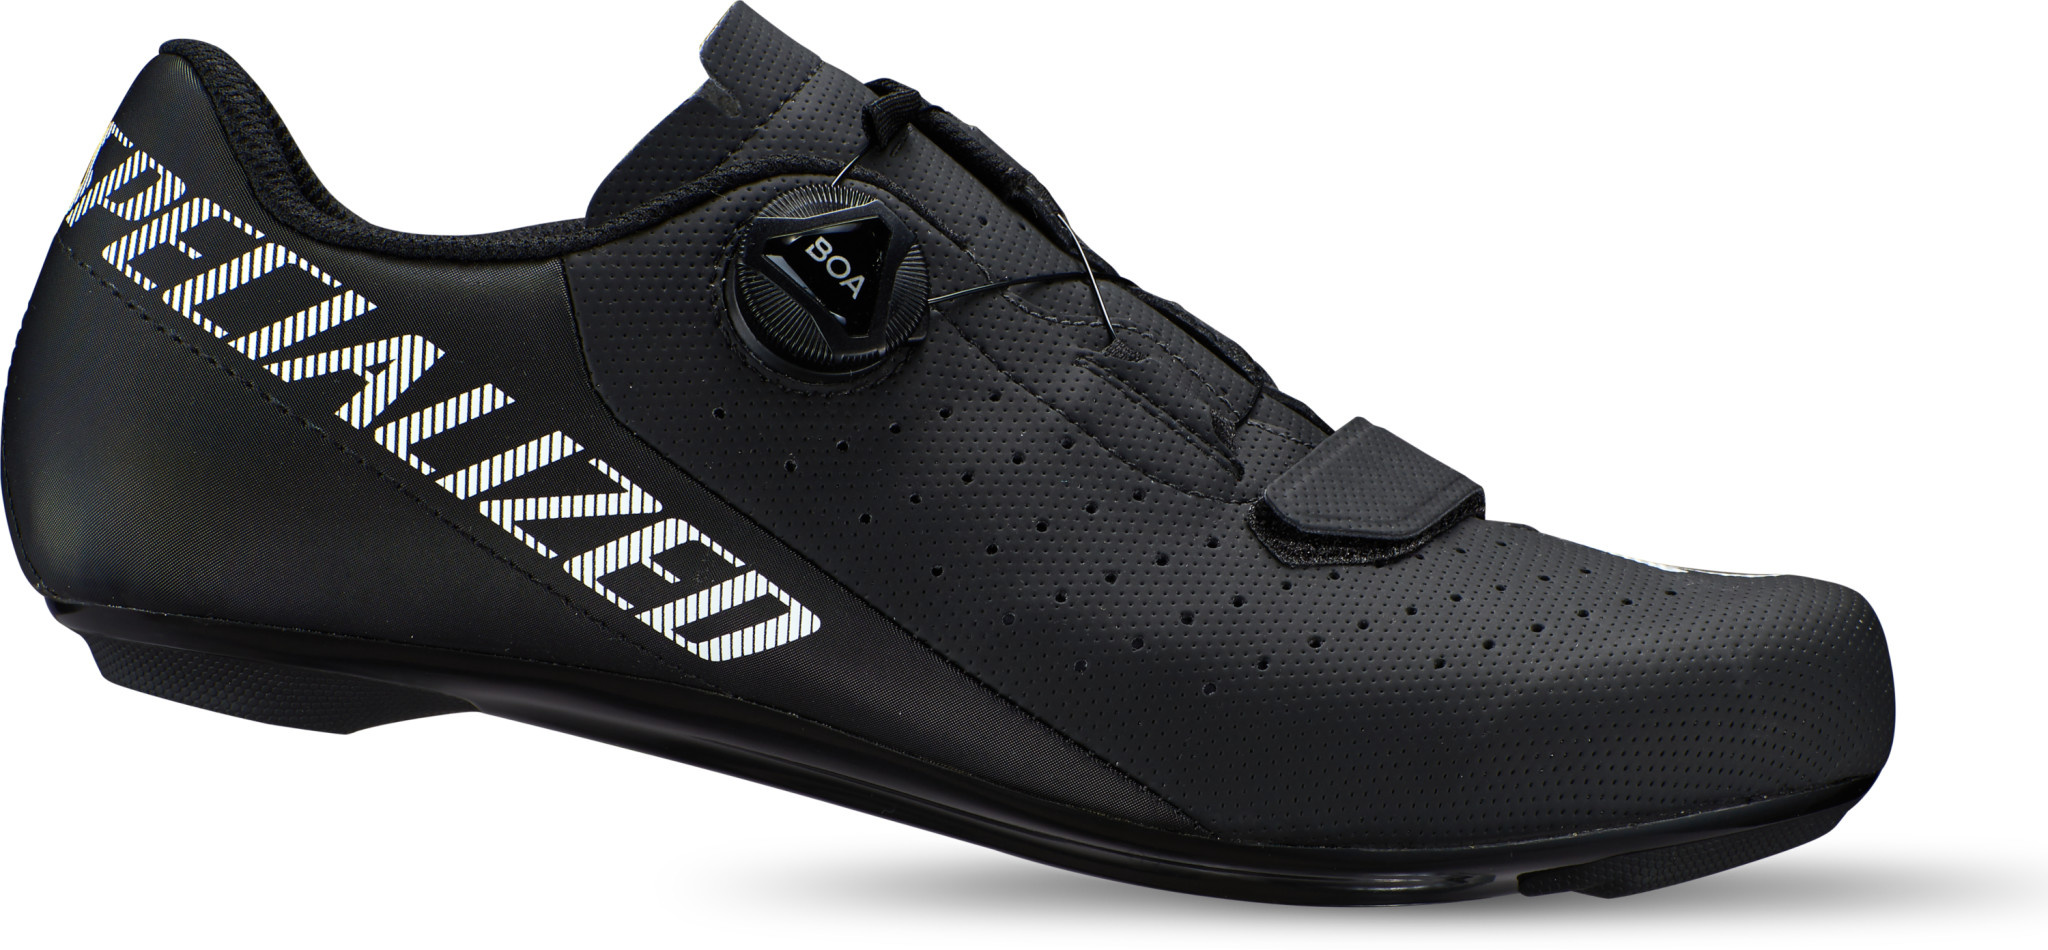 Specialized 20 Torch 1.0 Road Shoes Blk